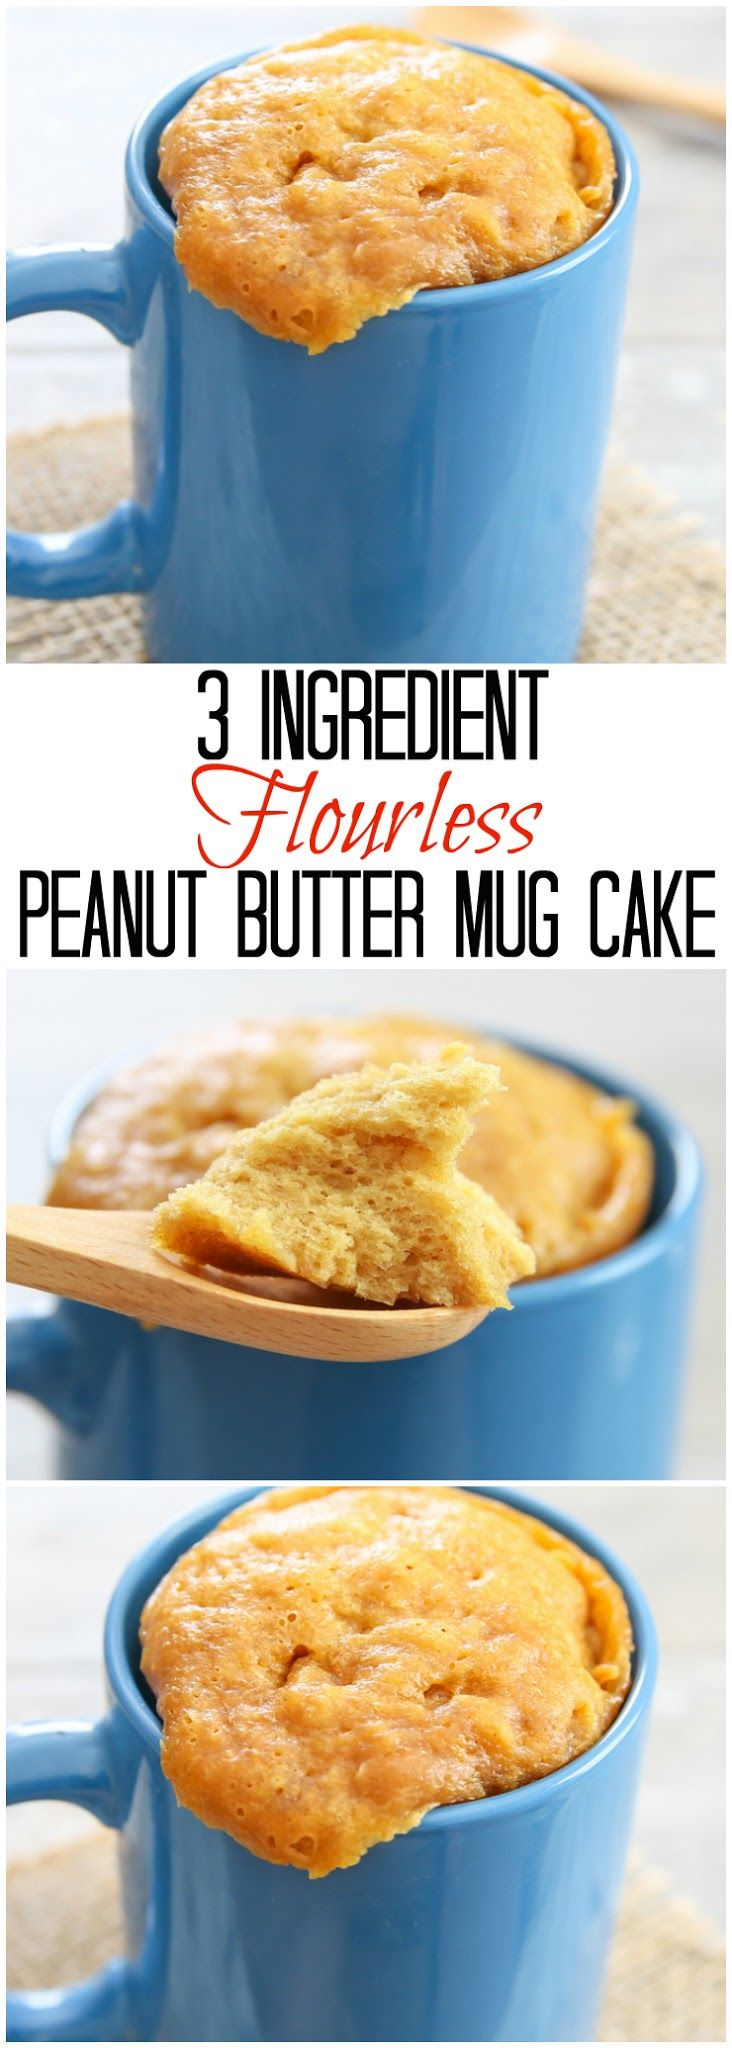 3 Ingredient Flourless Peanut Butter Mug Cake... easy, delicious, and ready in 5 minutes!